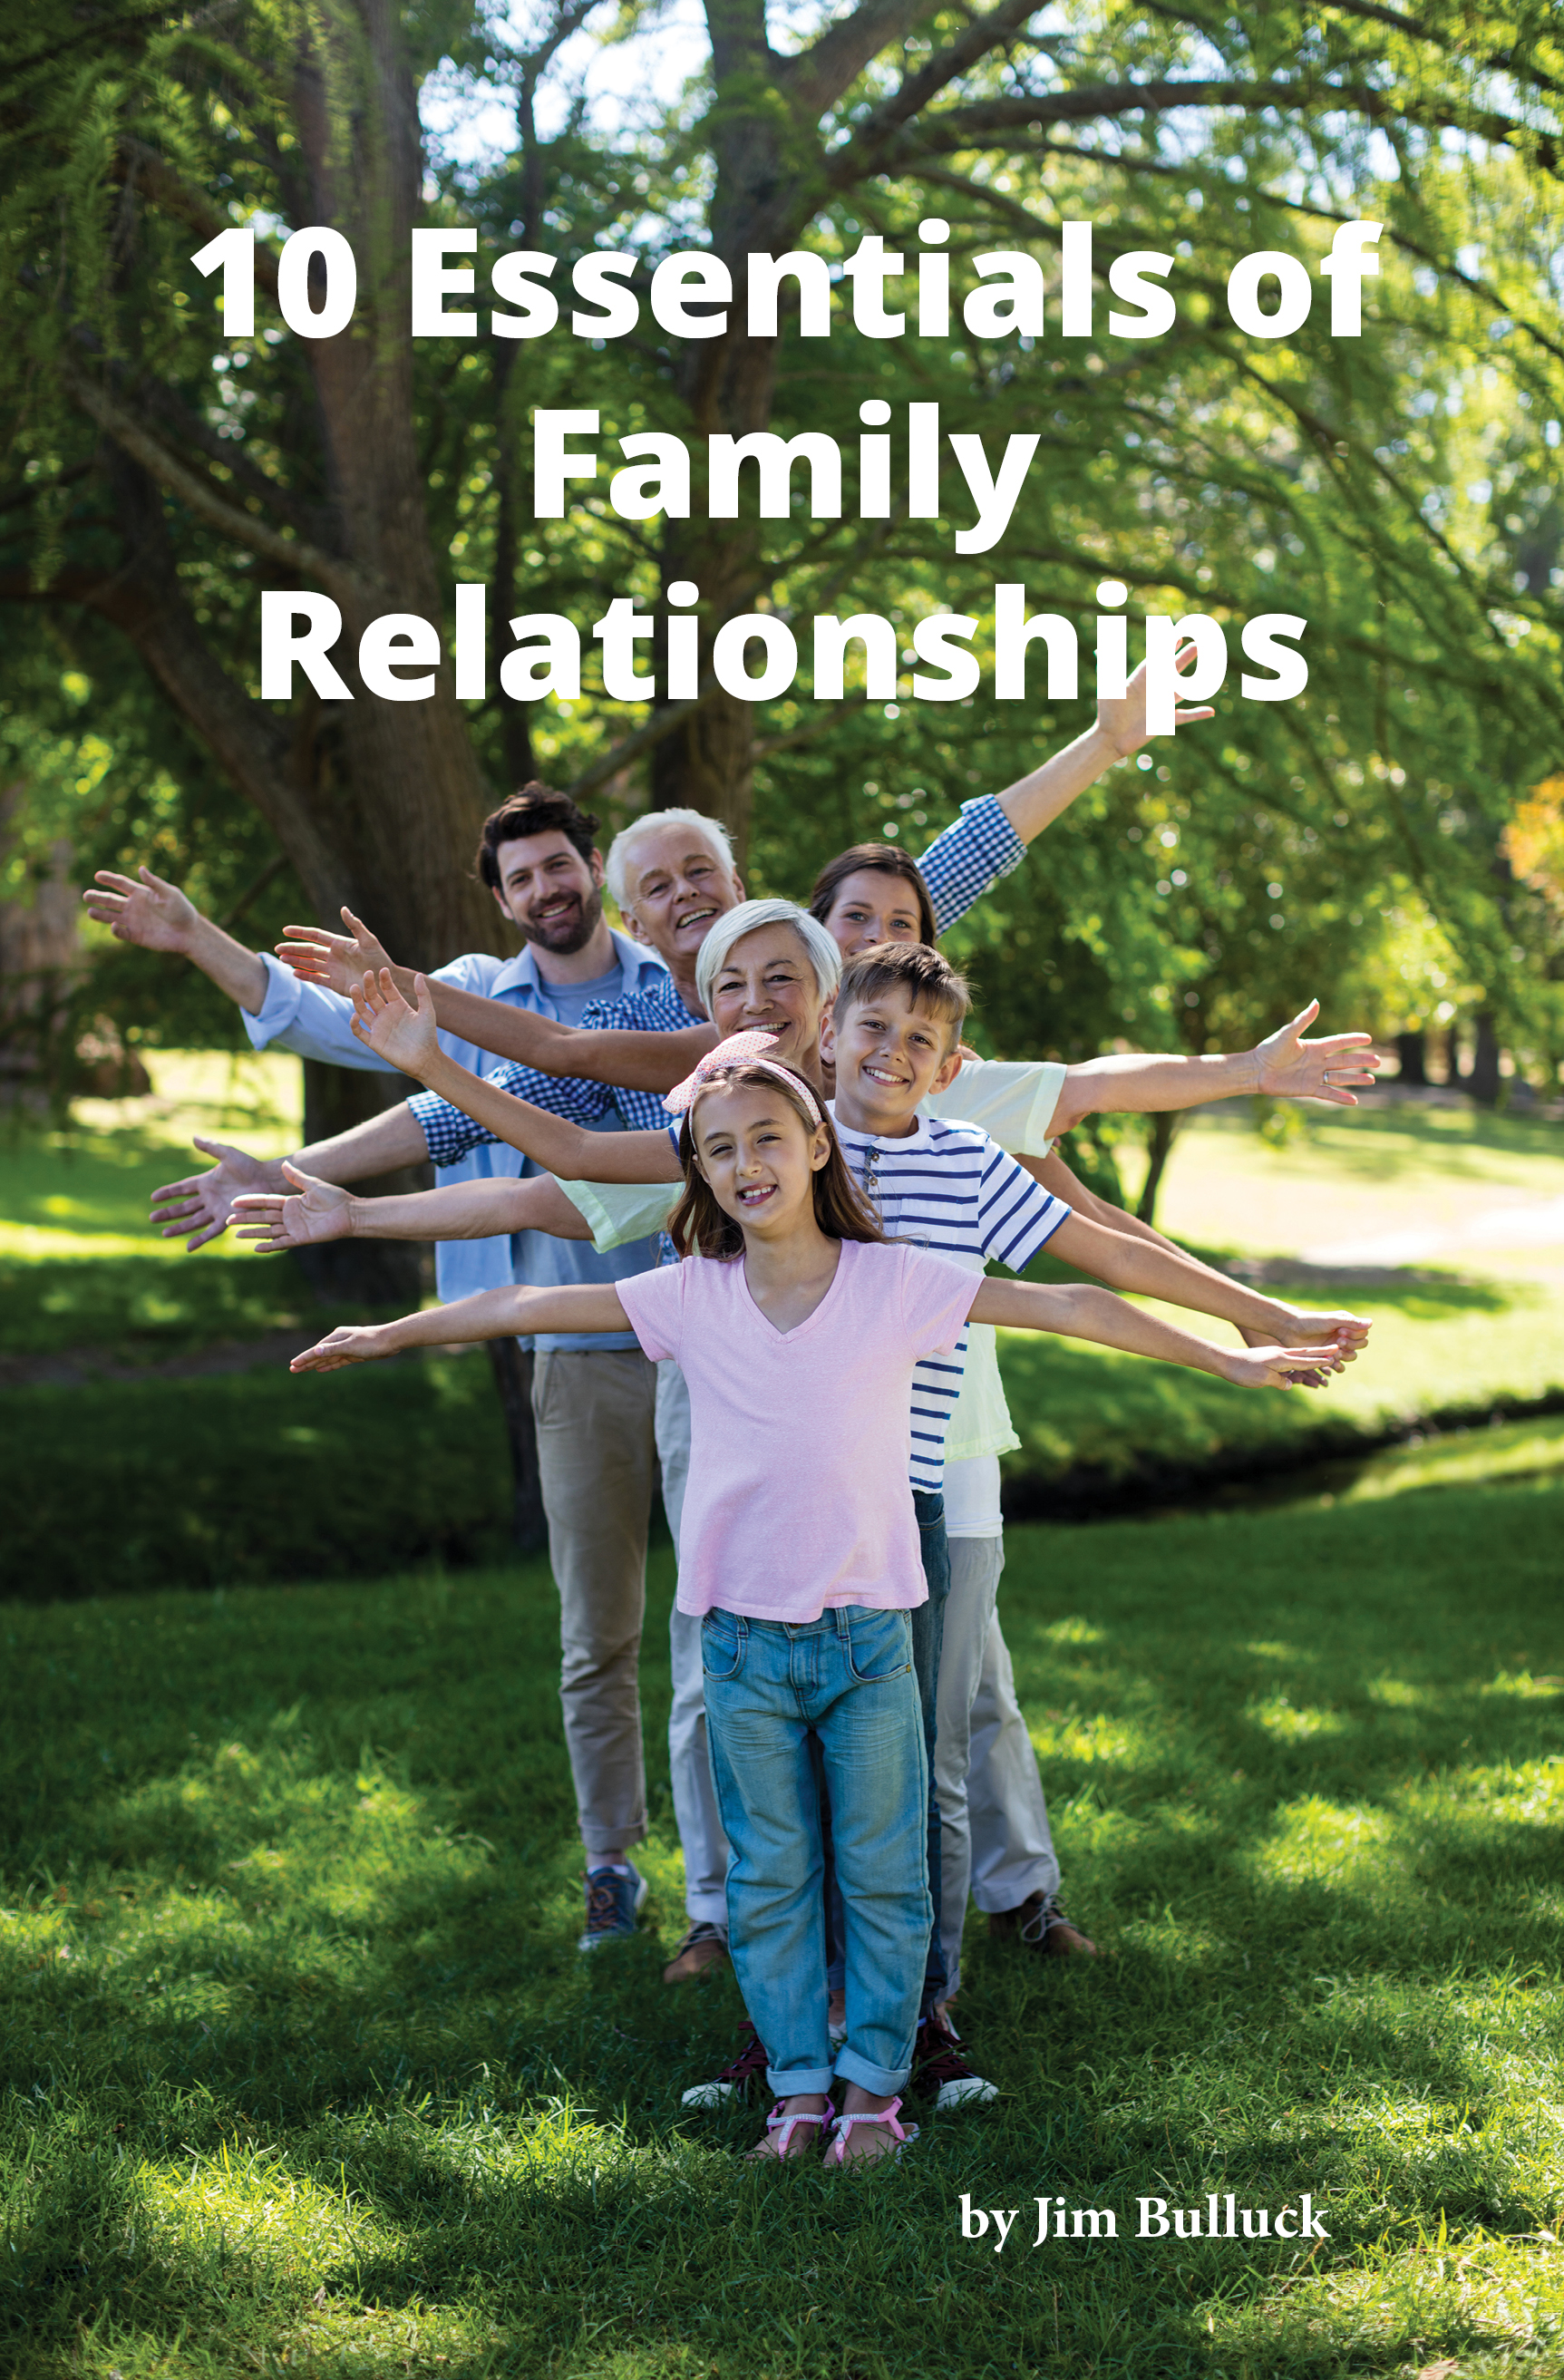 The-10-Essentials-of-Family-Relationships